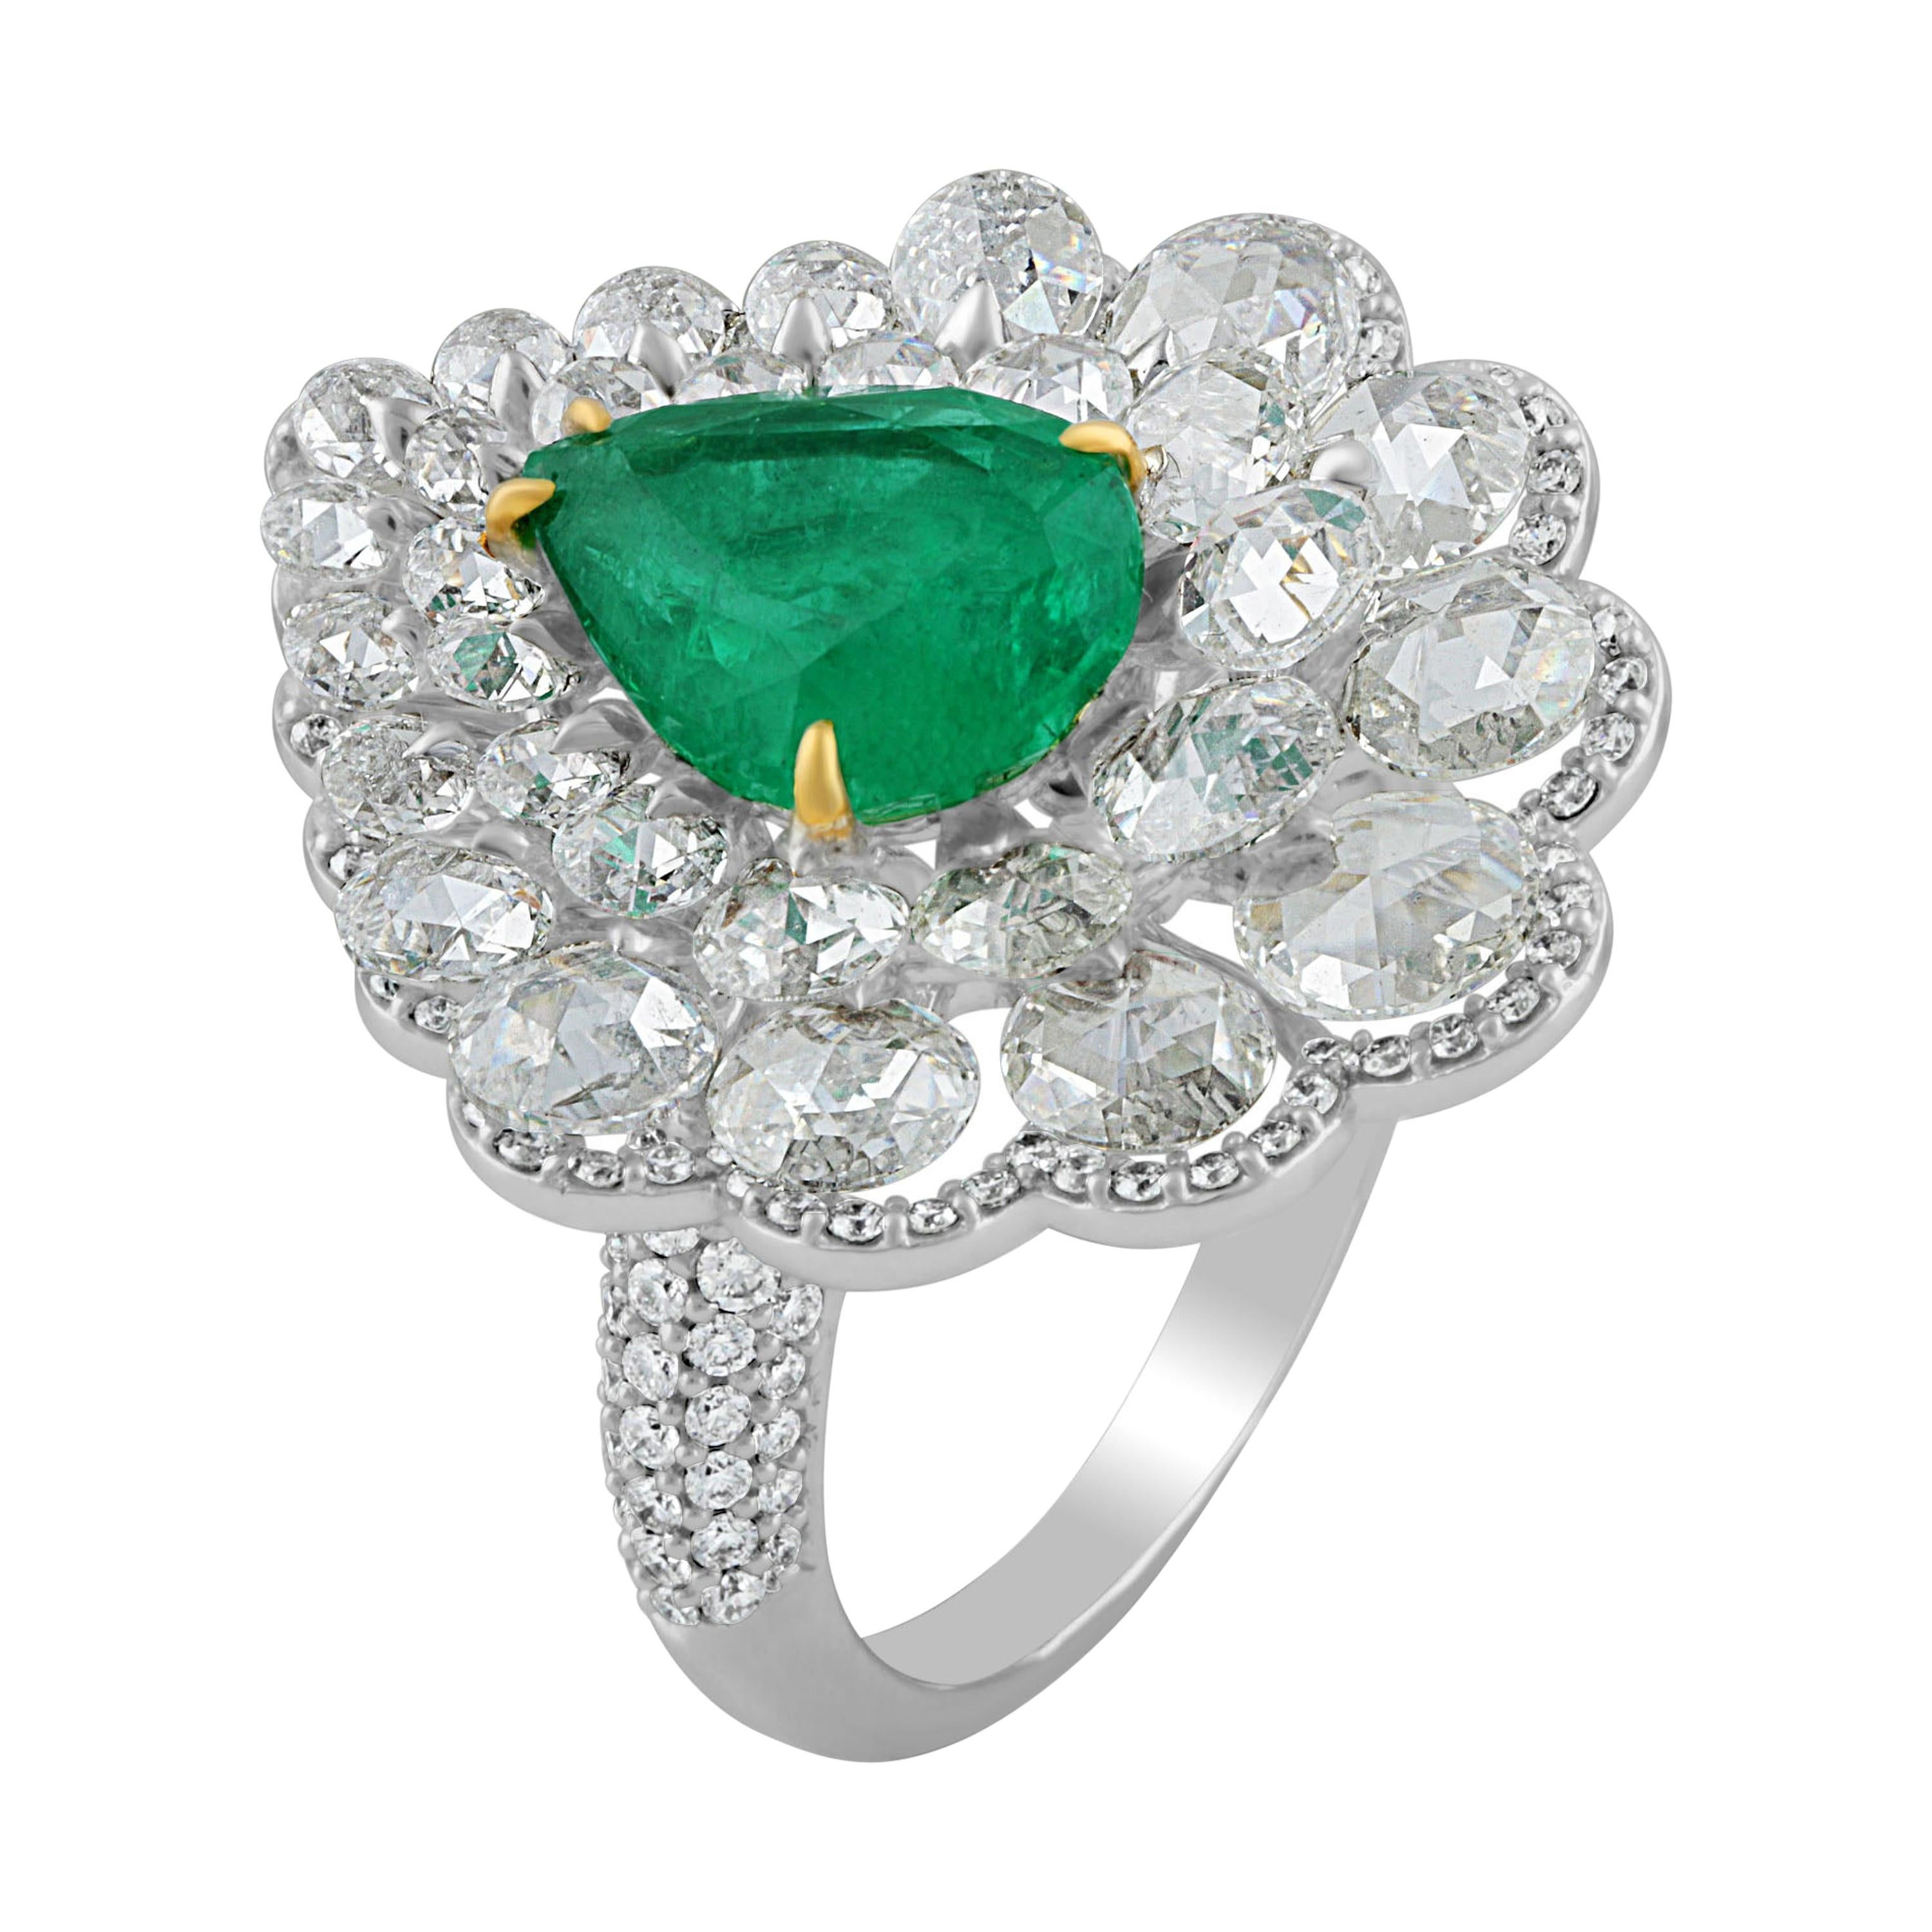 b561845de03d5 Antique Emerald Cocktail Rings - 1,515 For Sale at 1stdibs